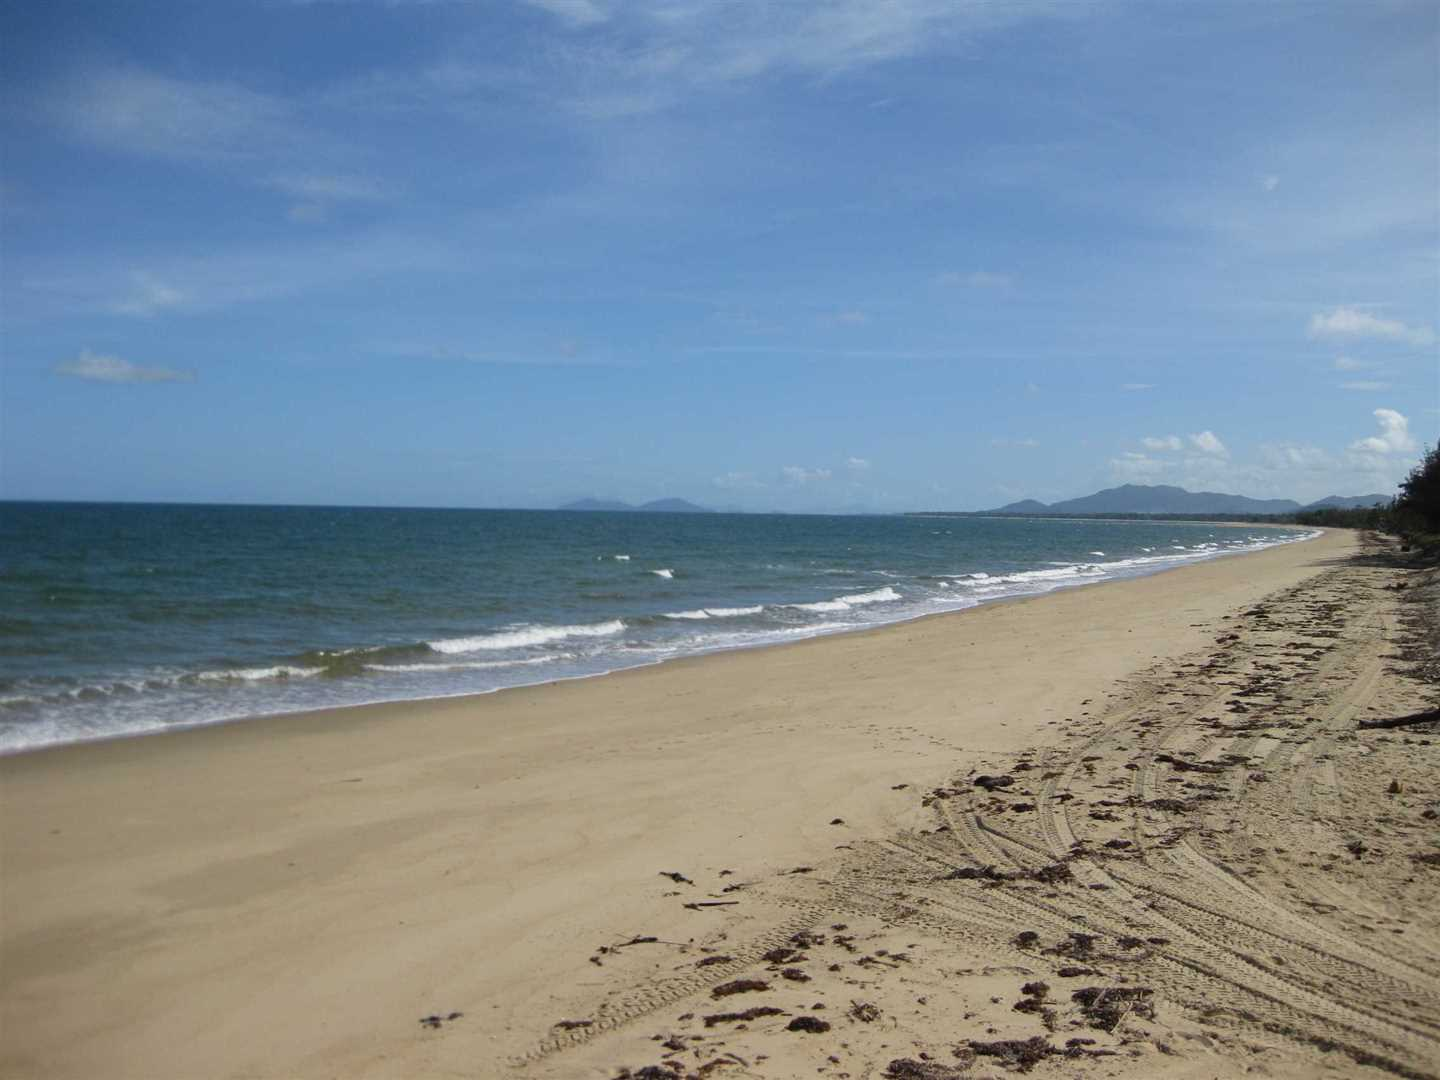 View of part of Cowley Beach, photo 1